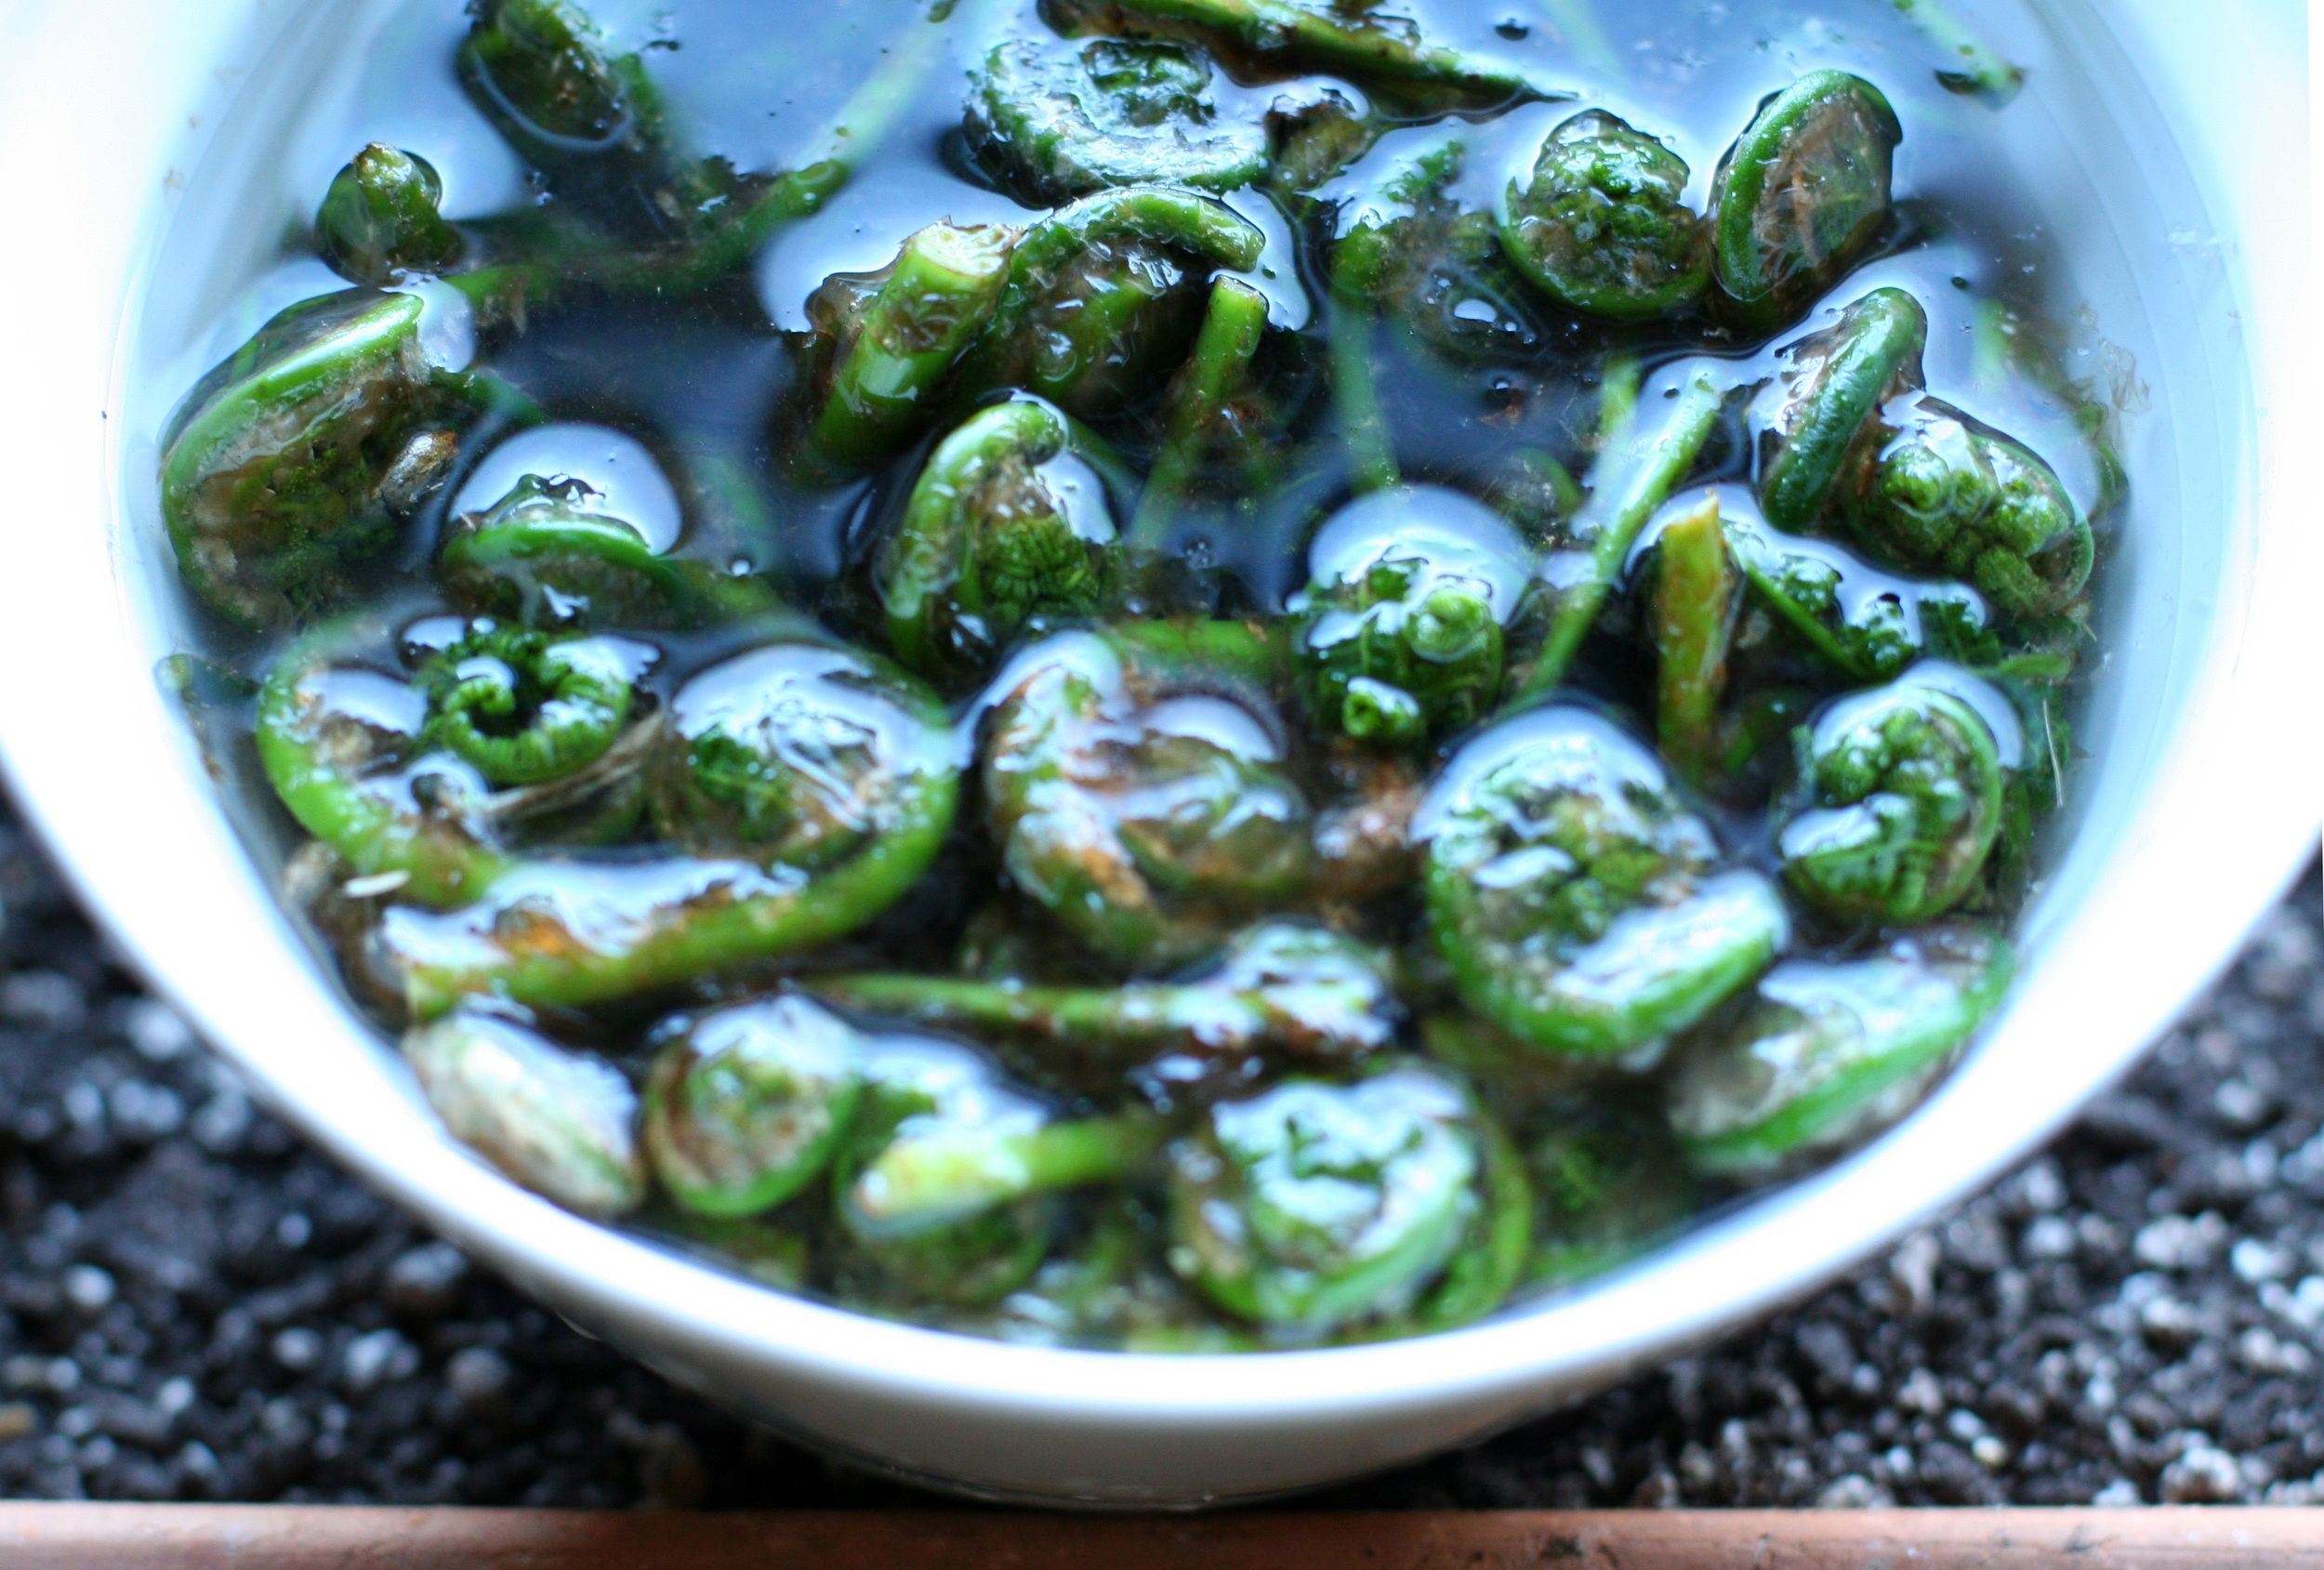 fiddleheads in water.jpg